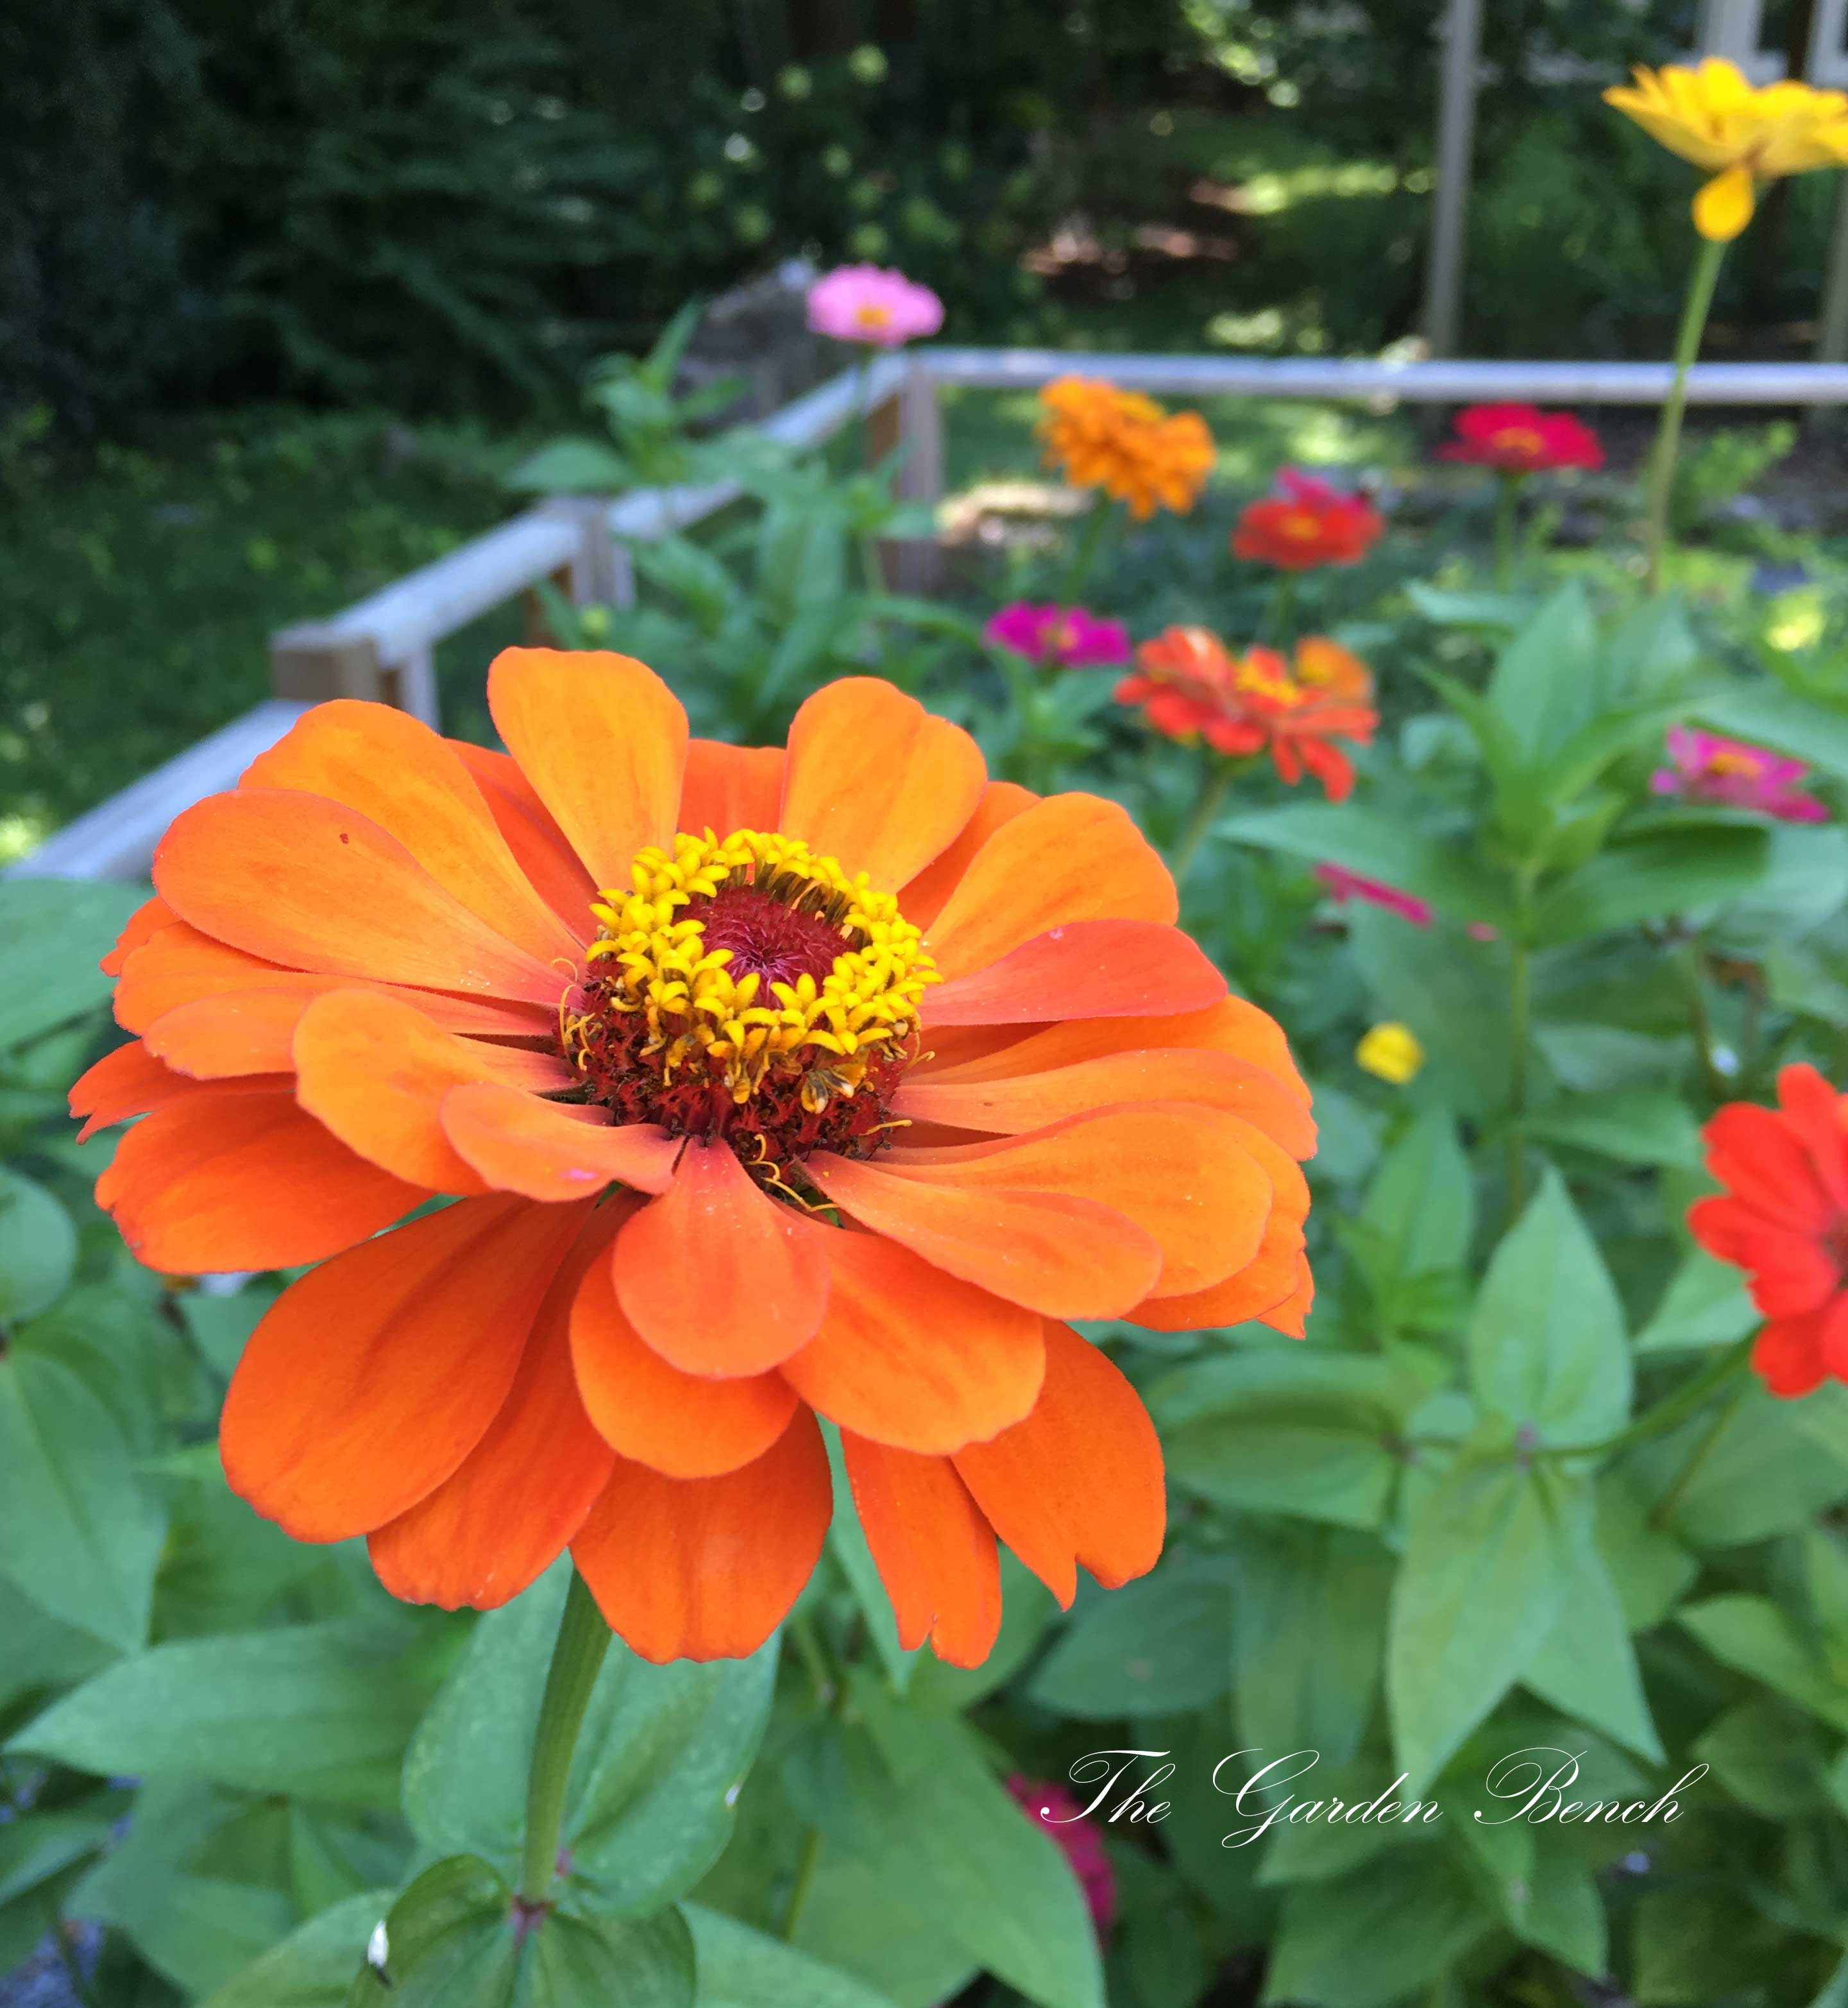 Majors flowers: growing zinnia at home from seed and caring for a plant 17